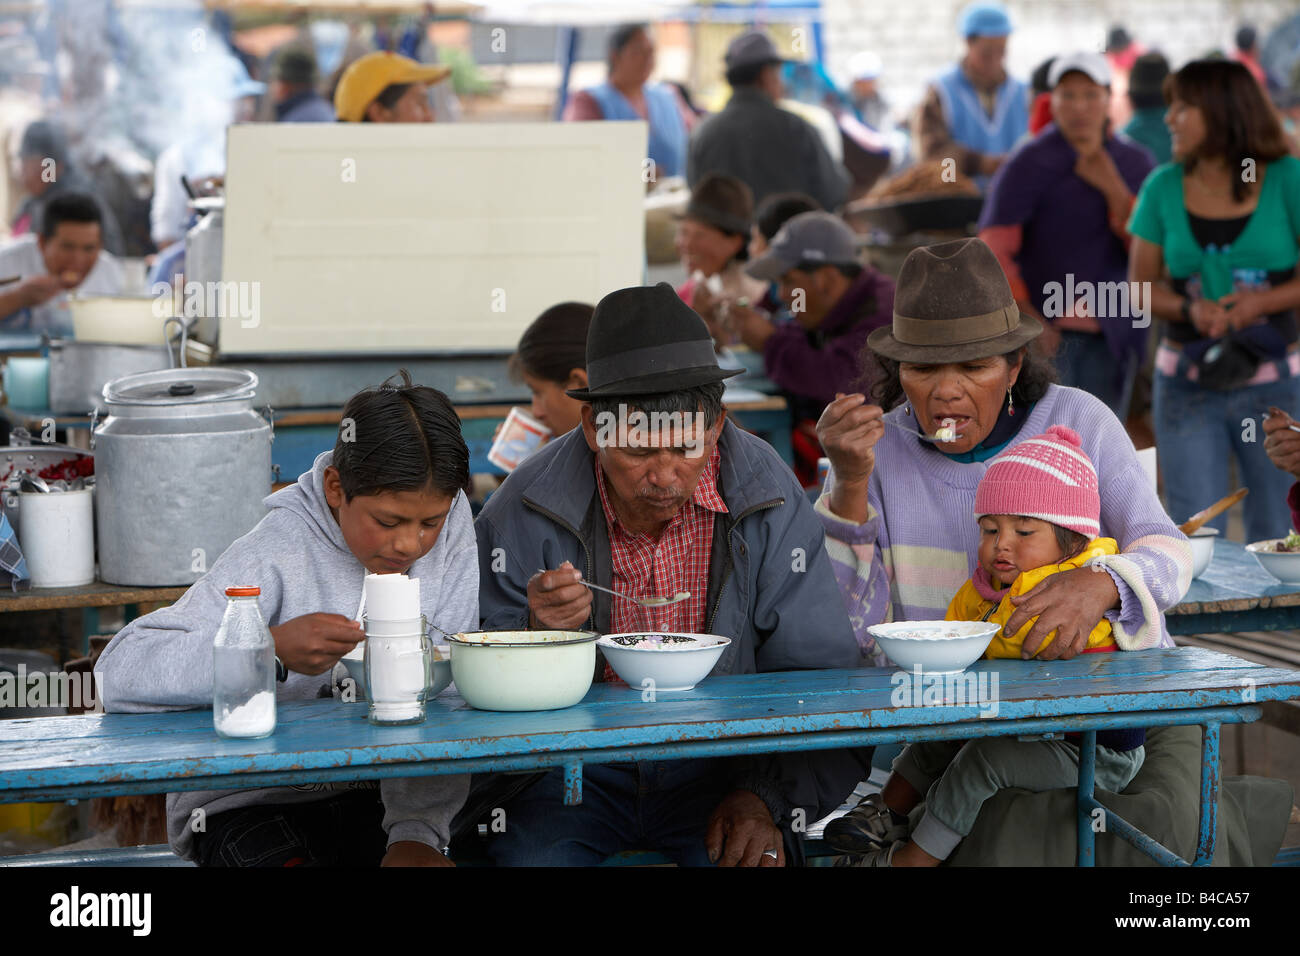 Family eating at Saquisili Market, Andes Mountains, Ecuador - Stock Image